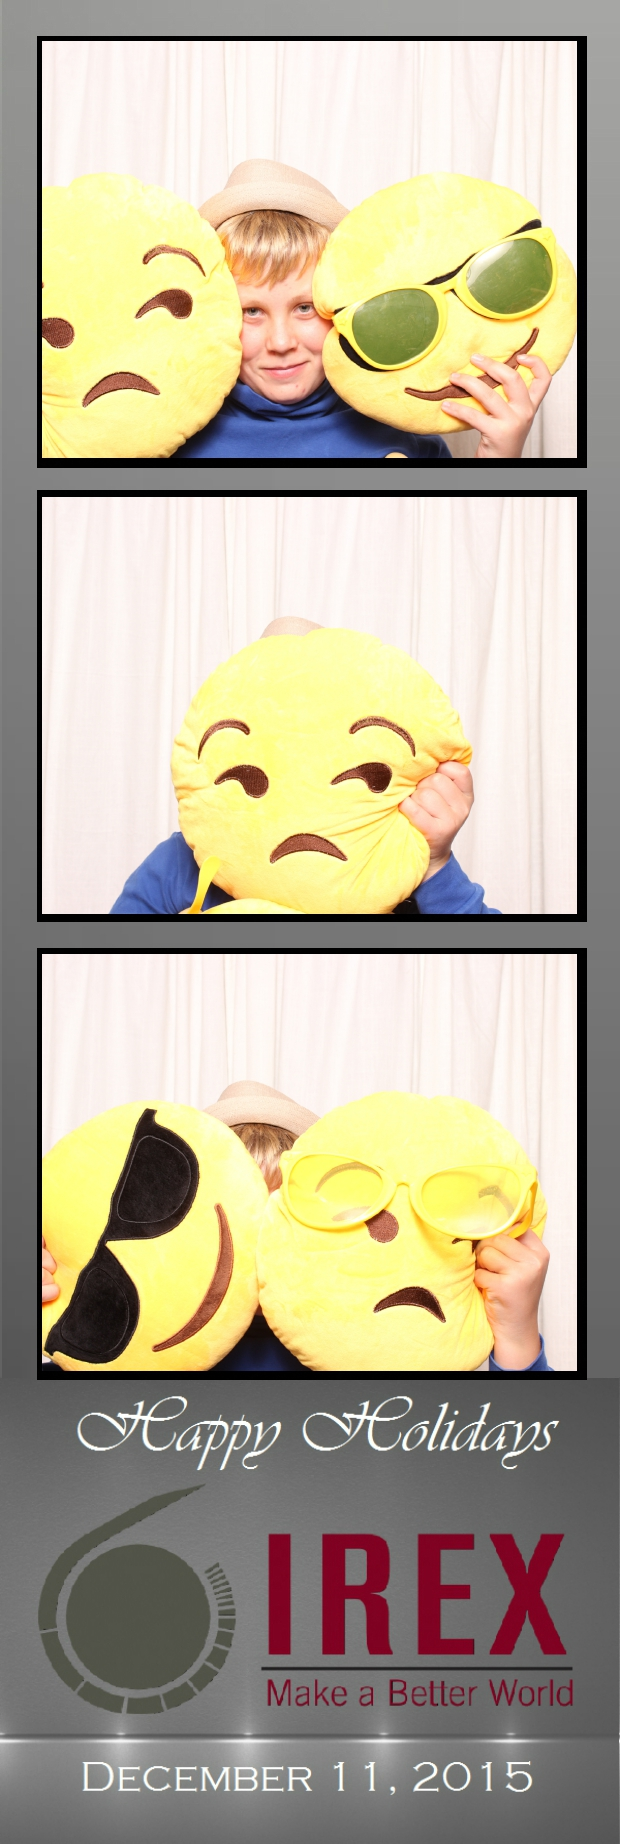 Guest House Events Photo Booth Strips IREX (90).jpg